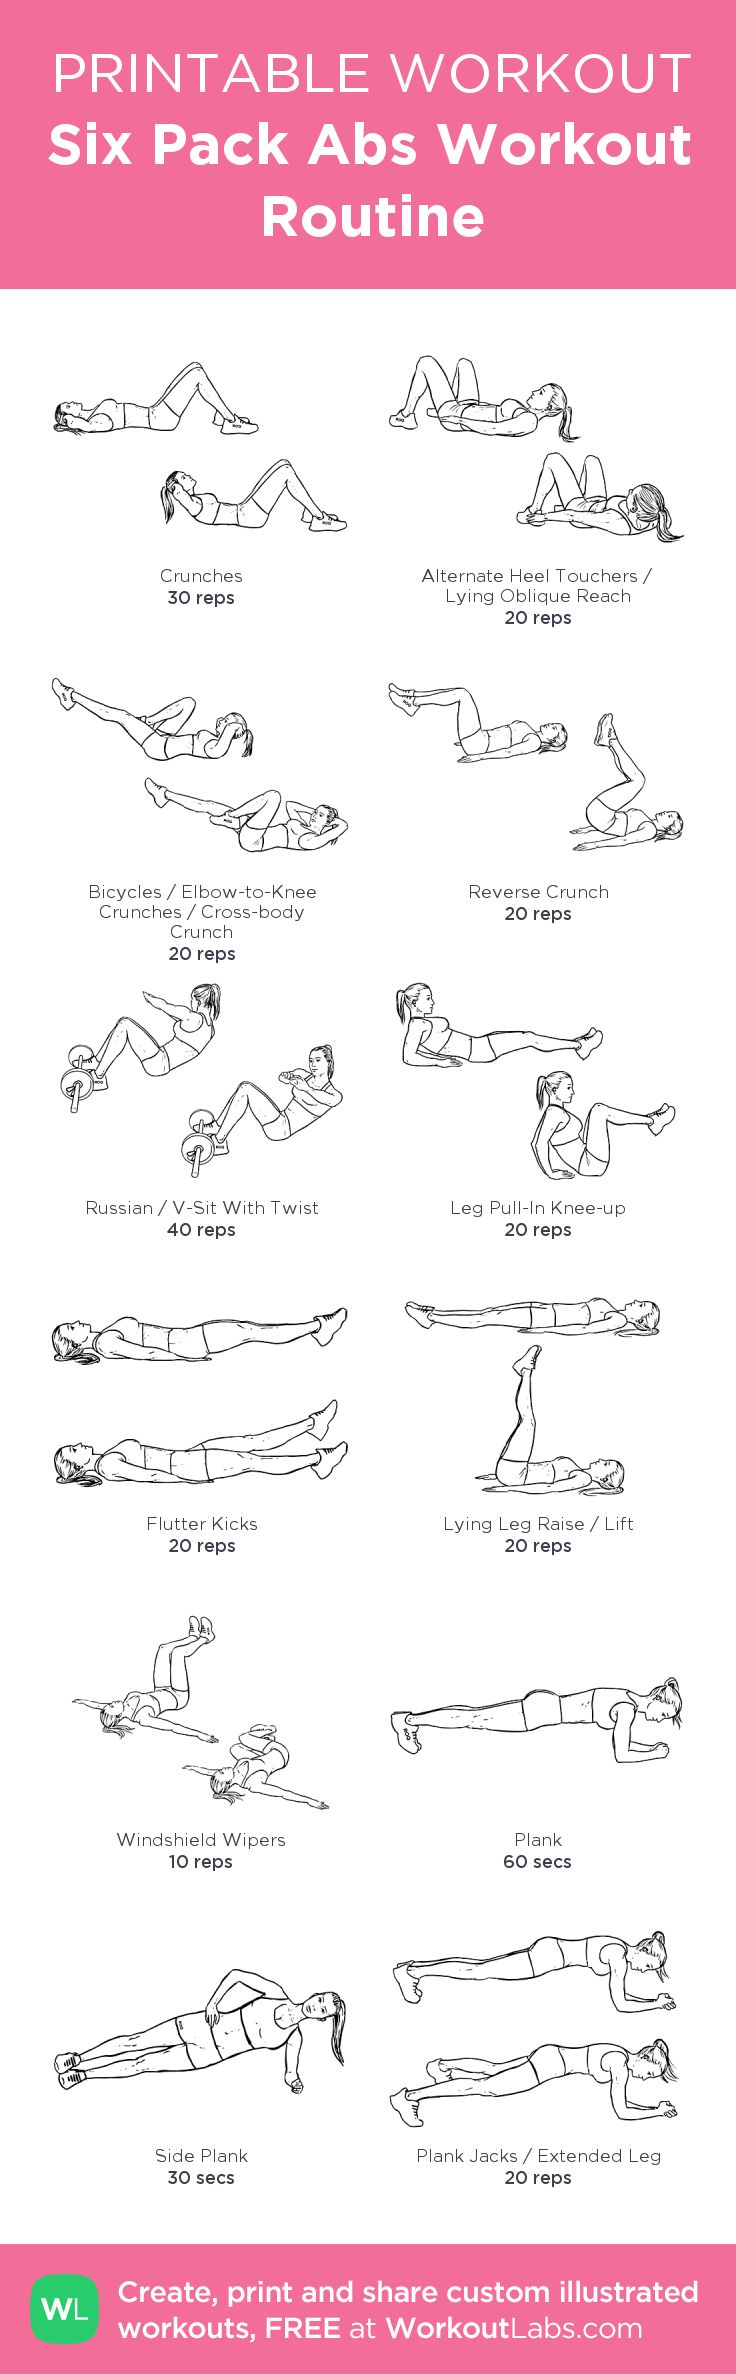 Six Pack Abs Workout Routine –my custom workout created at WorkoutLabs.com • Click through to download as printable PDF! #customworkout